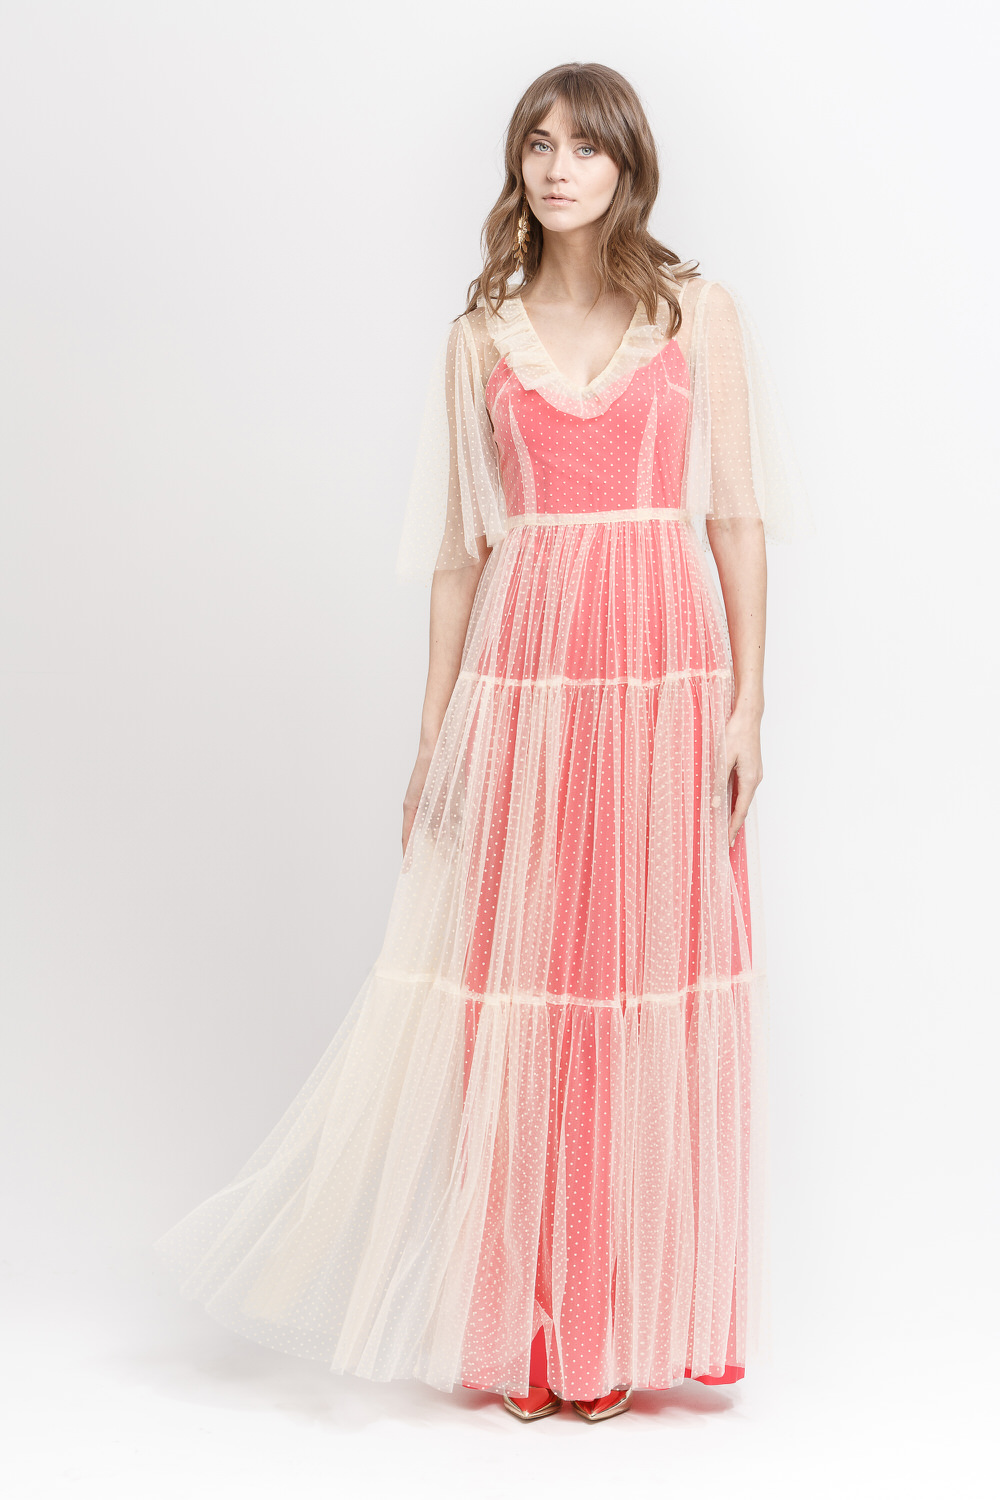 Romantic & Bohemian Bridal, Occasion And Bridesmaids Dresses From ...